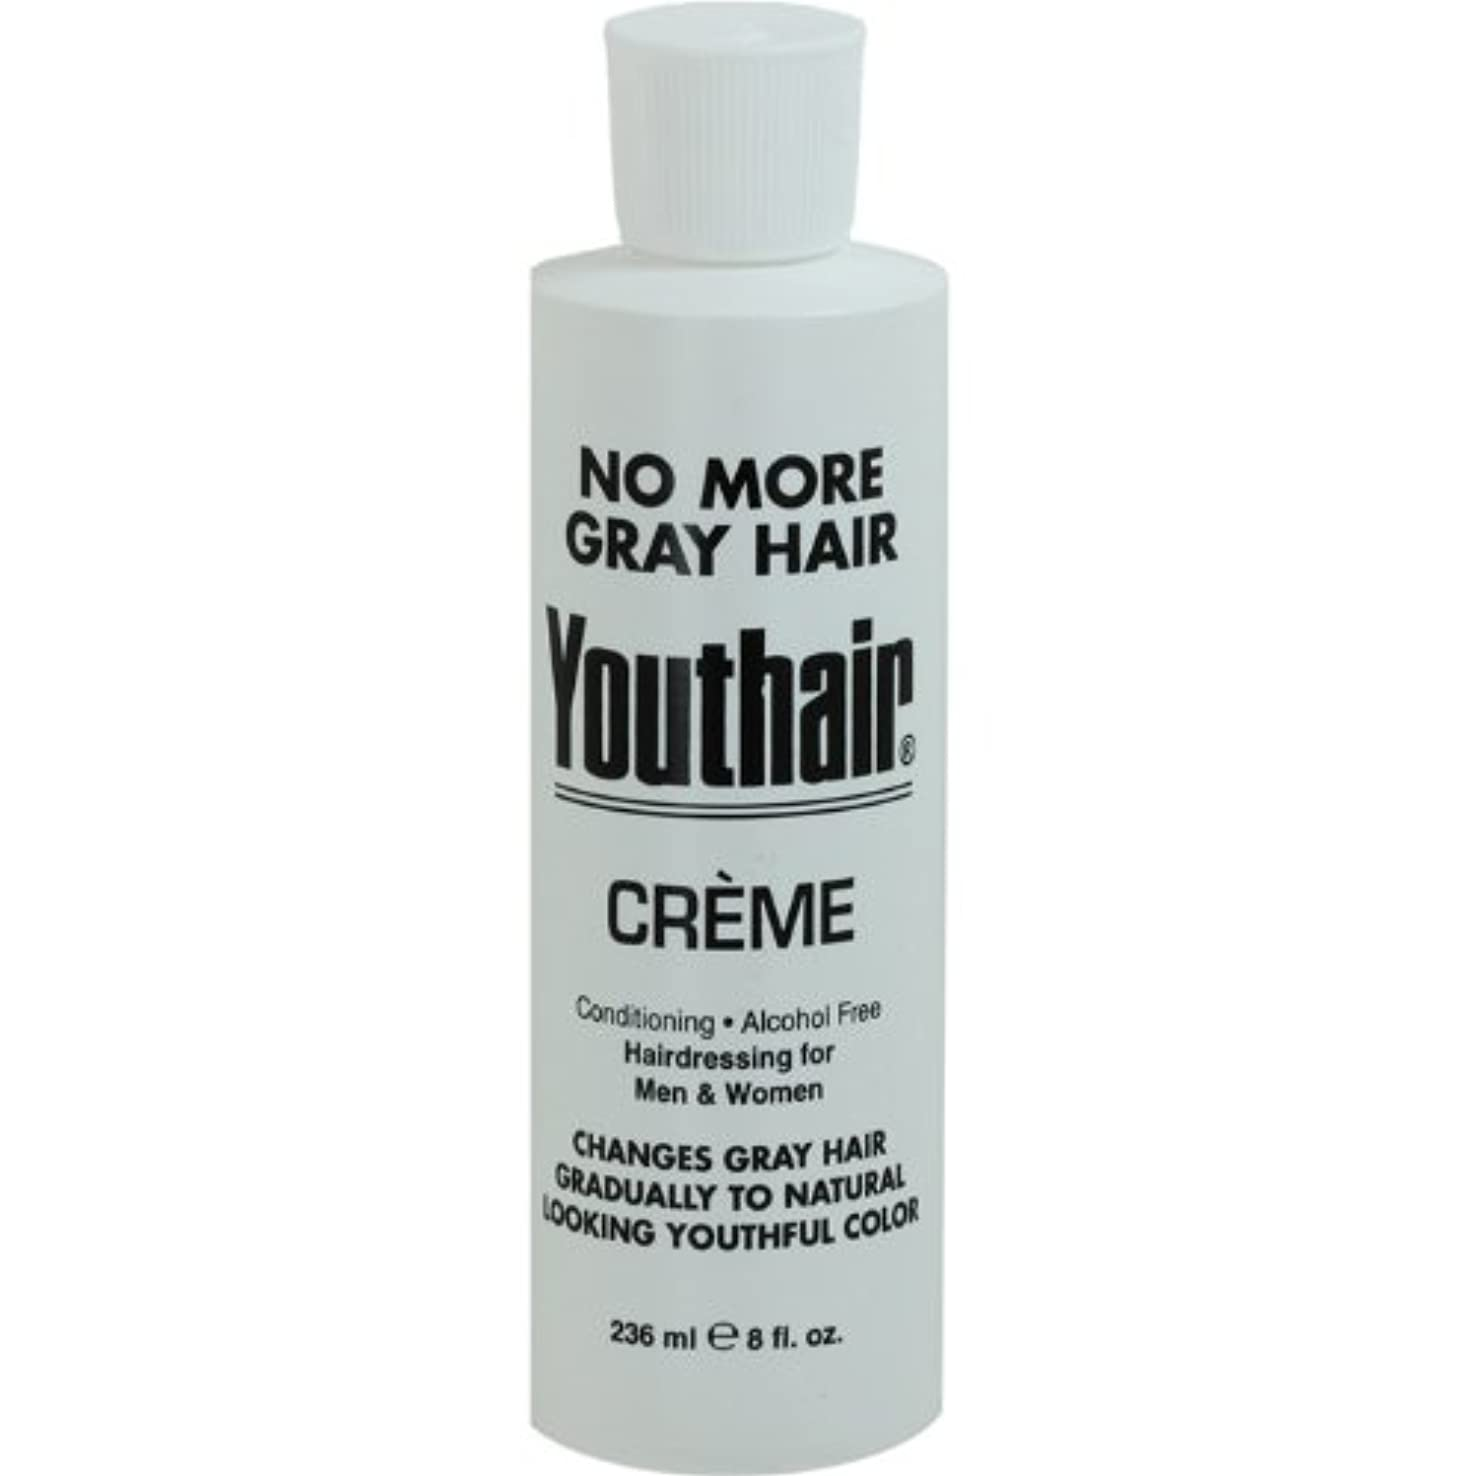 Youthair Creme, Round Bottle, 8 Ounce by Youthair